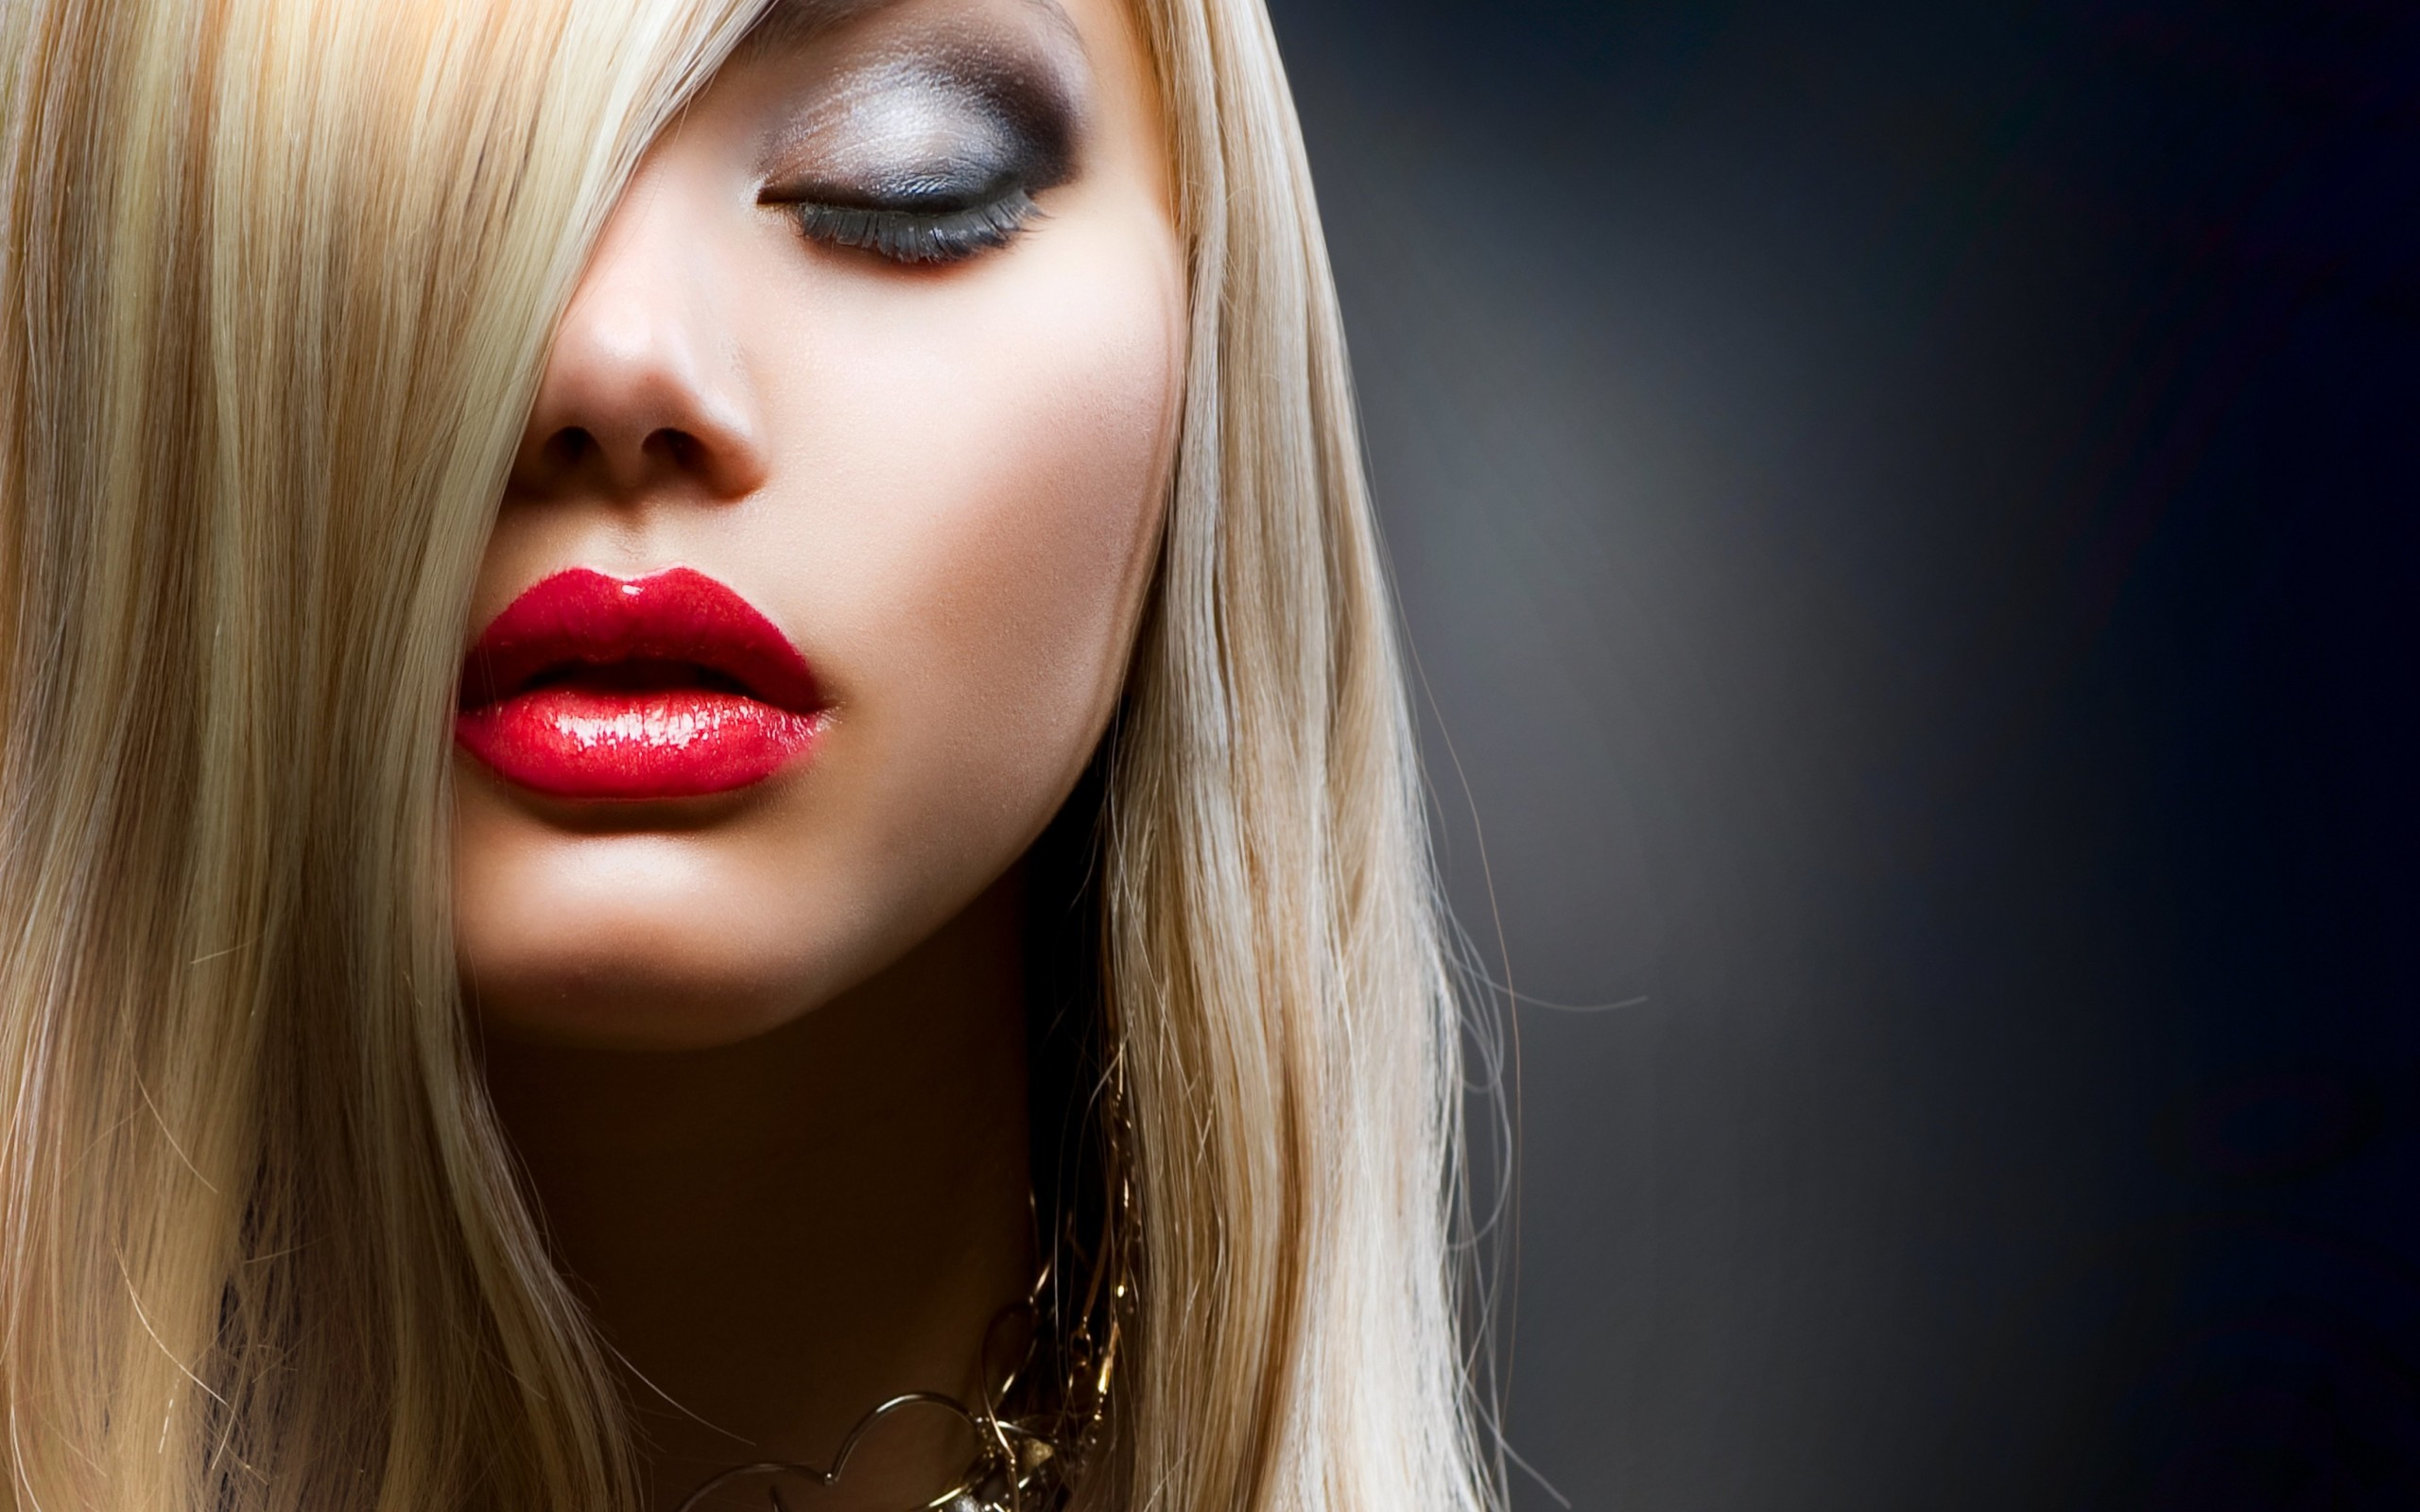 Hair Stylist Wallpaper 71 Images